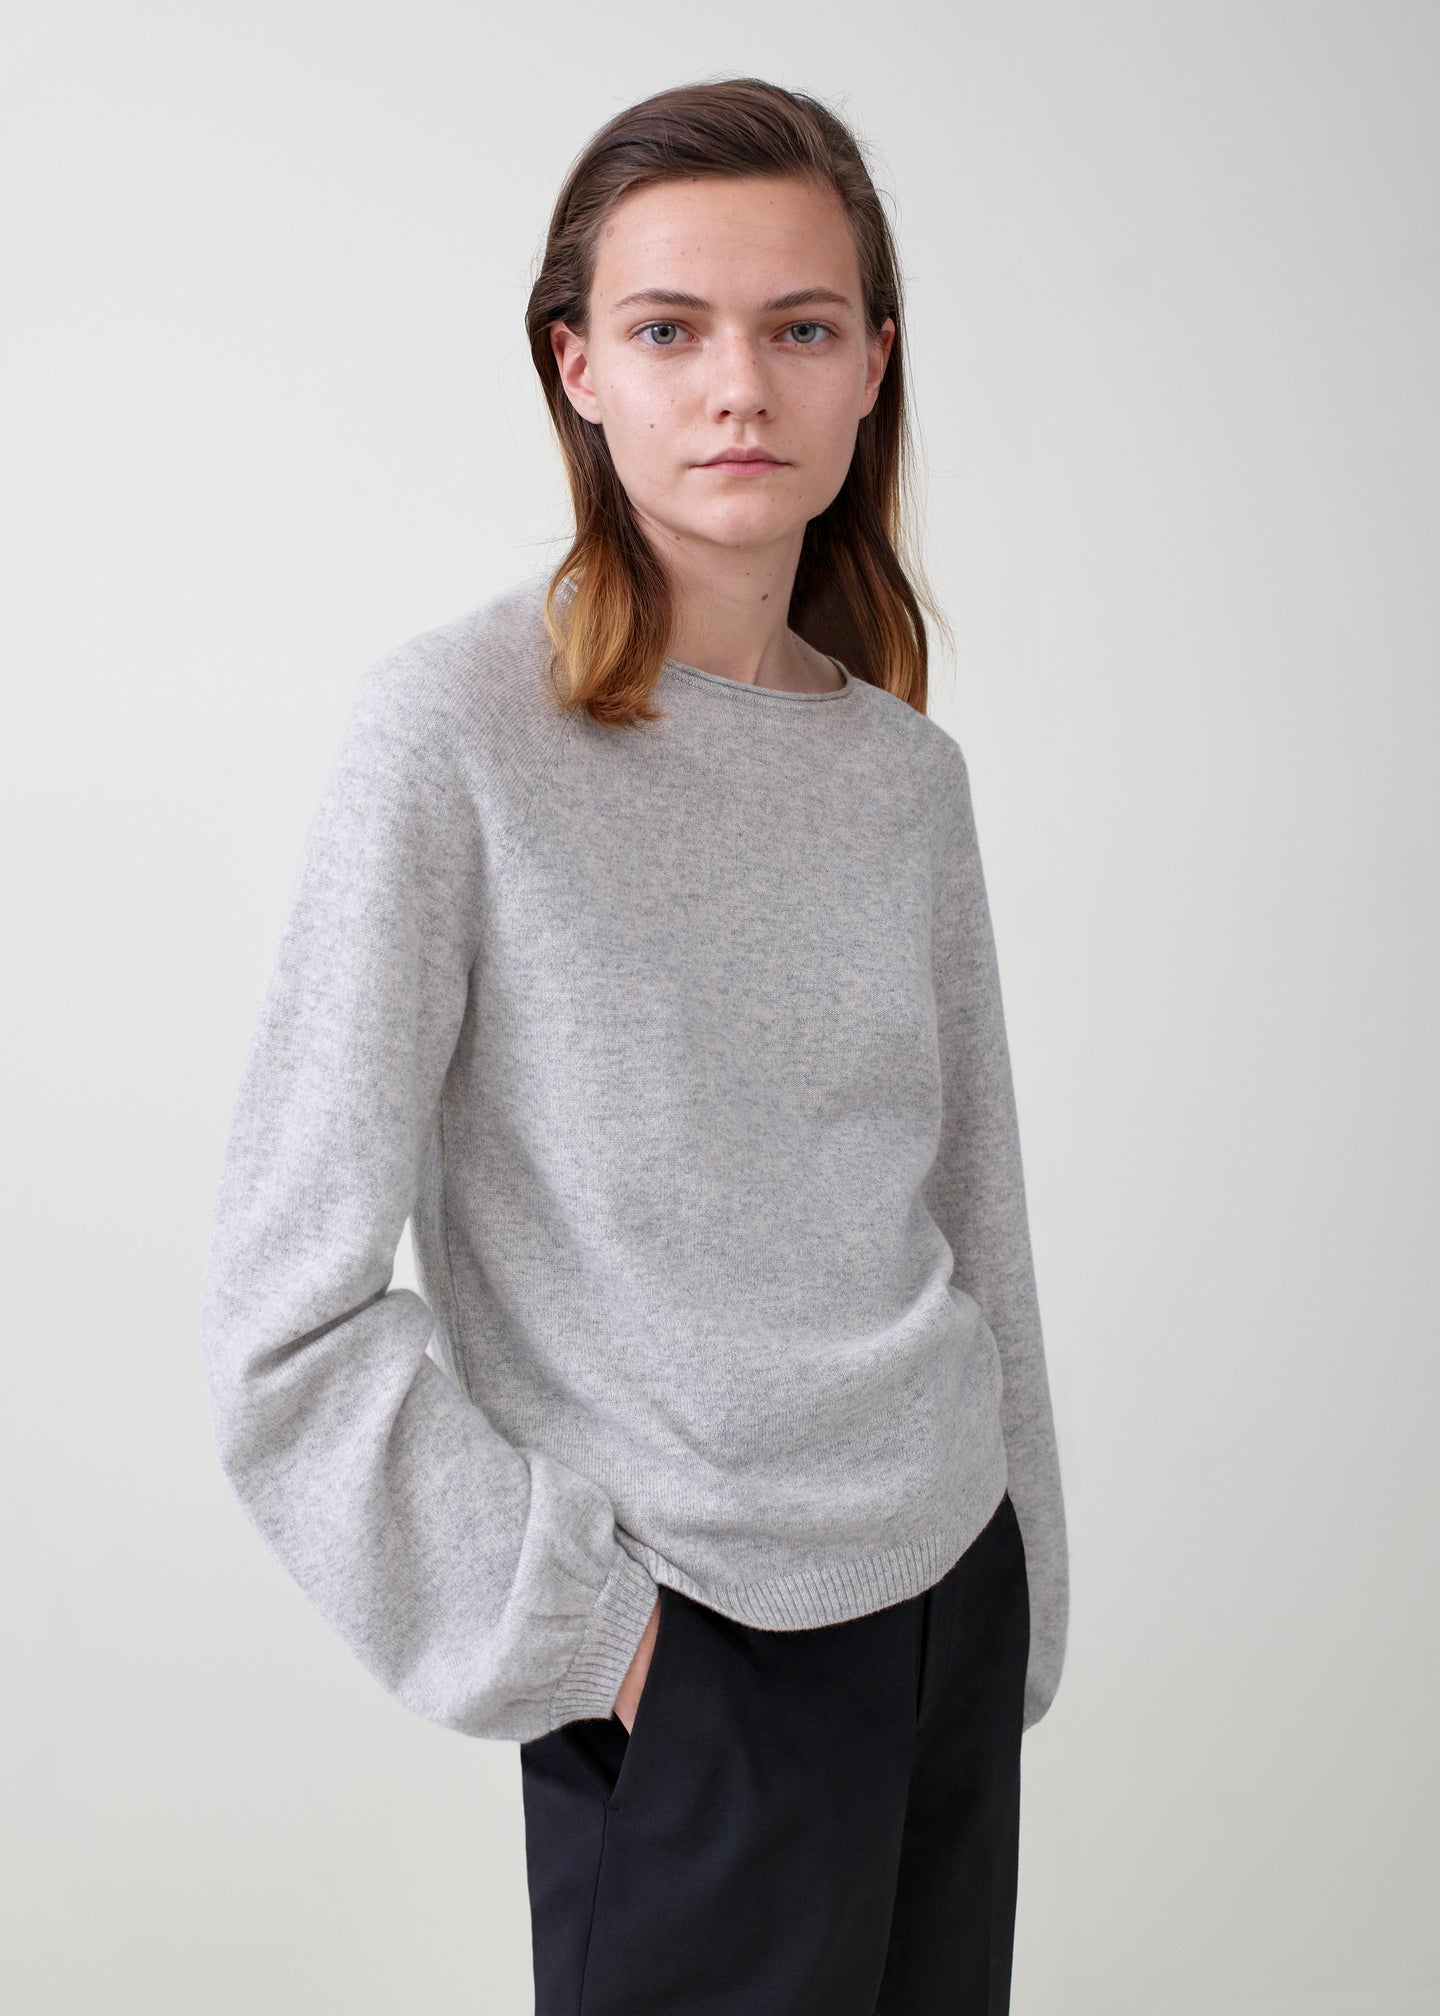 Raglan Peasant Sleeve Sweater - Light Grey - Co Collections